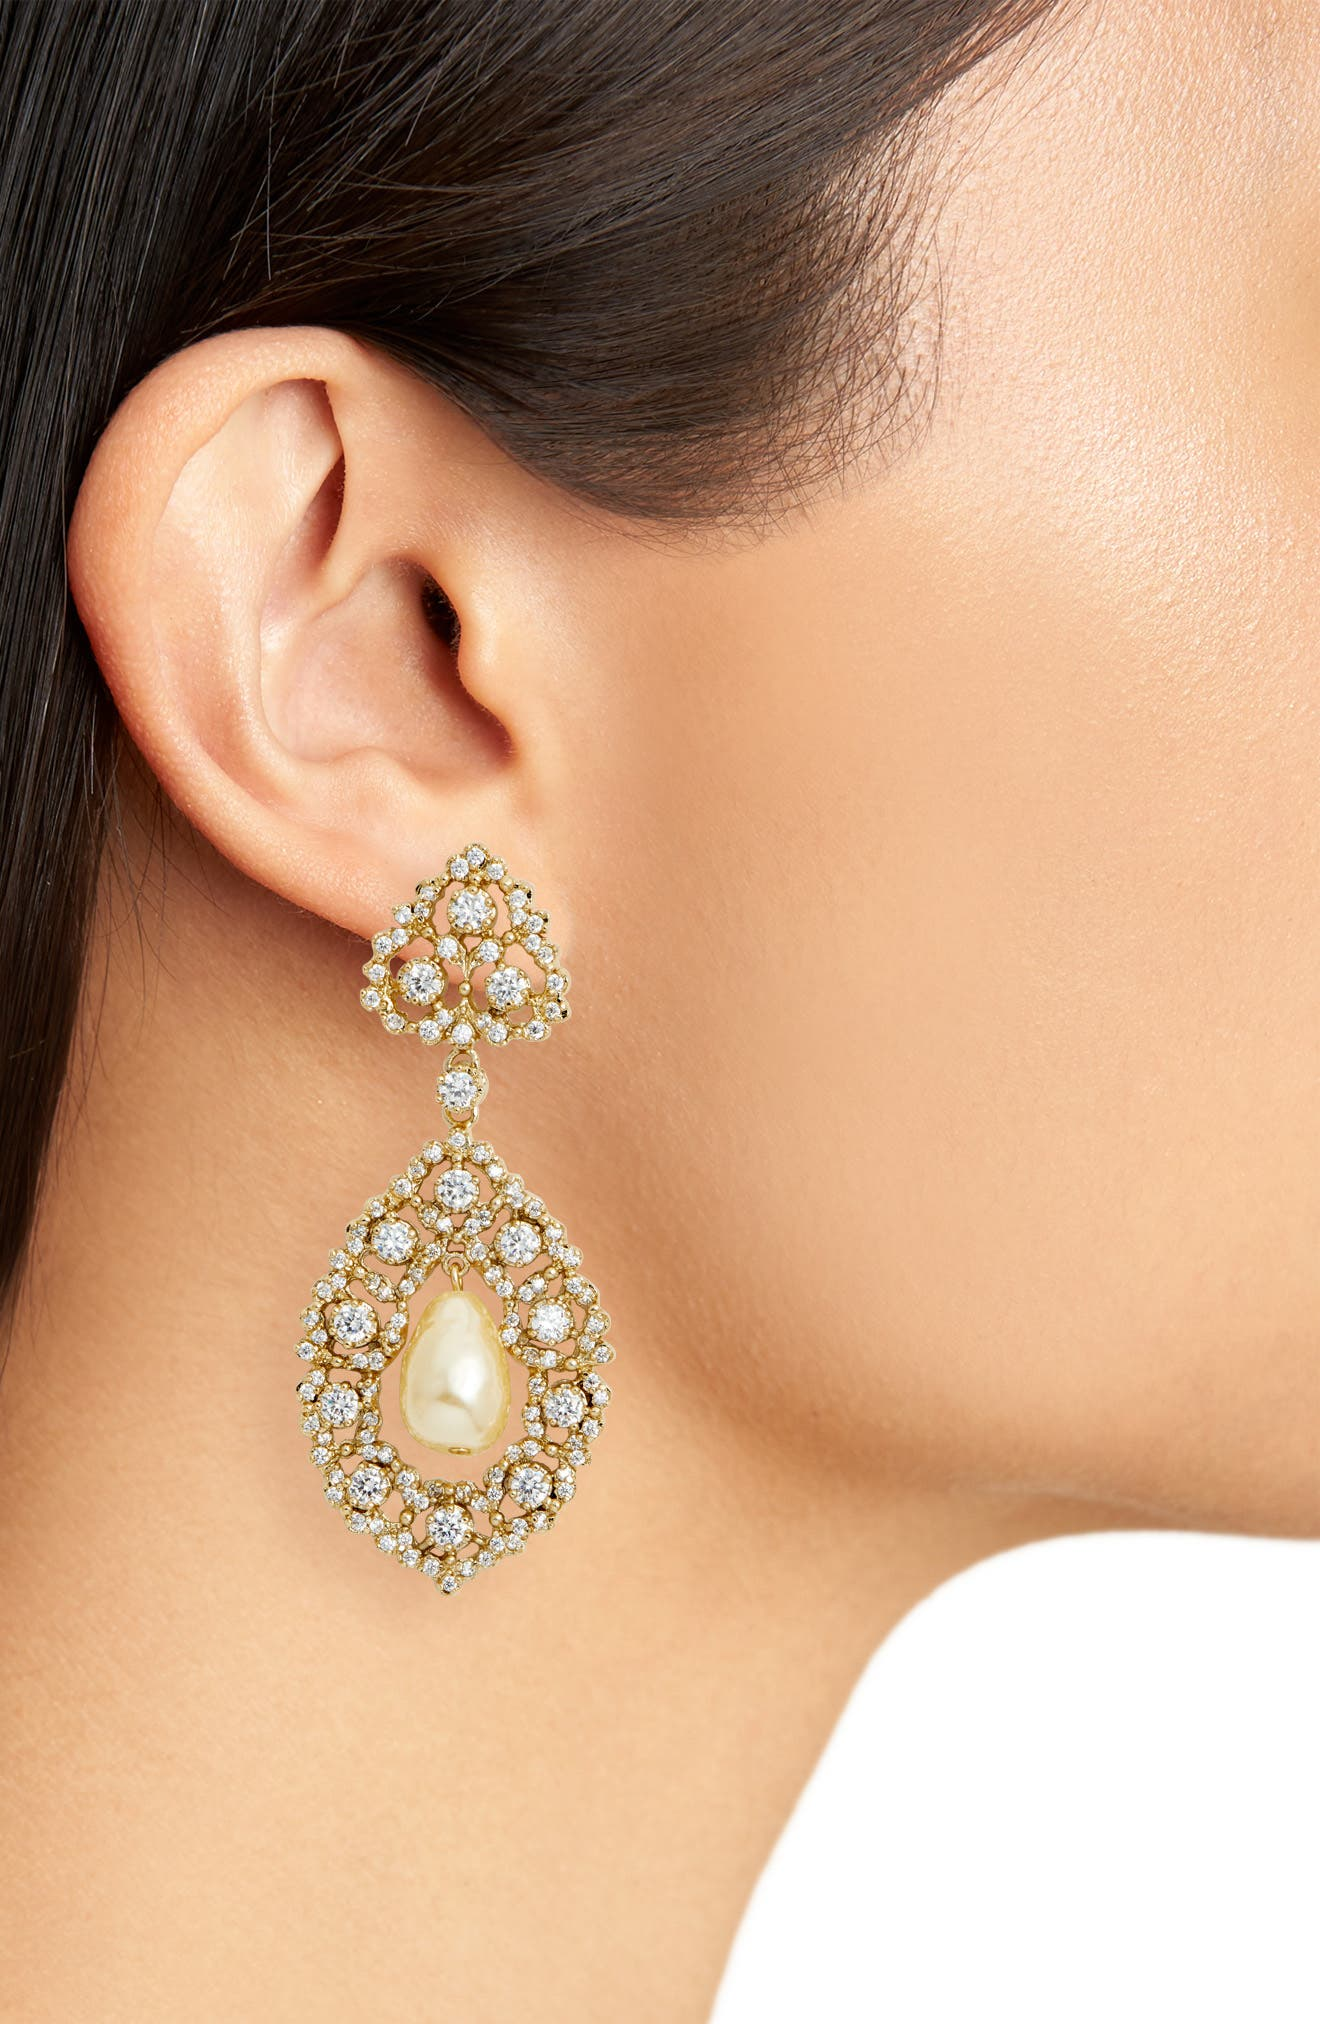 Rococo Double Drop Imitation Pearl Earrings,                             Alternate thumbnail 2, color,                             Ivory Pearl/ Gold